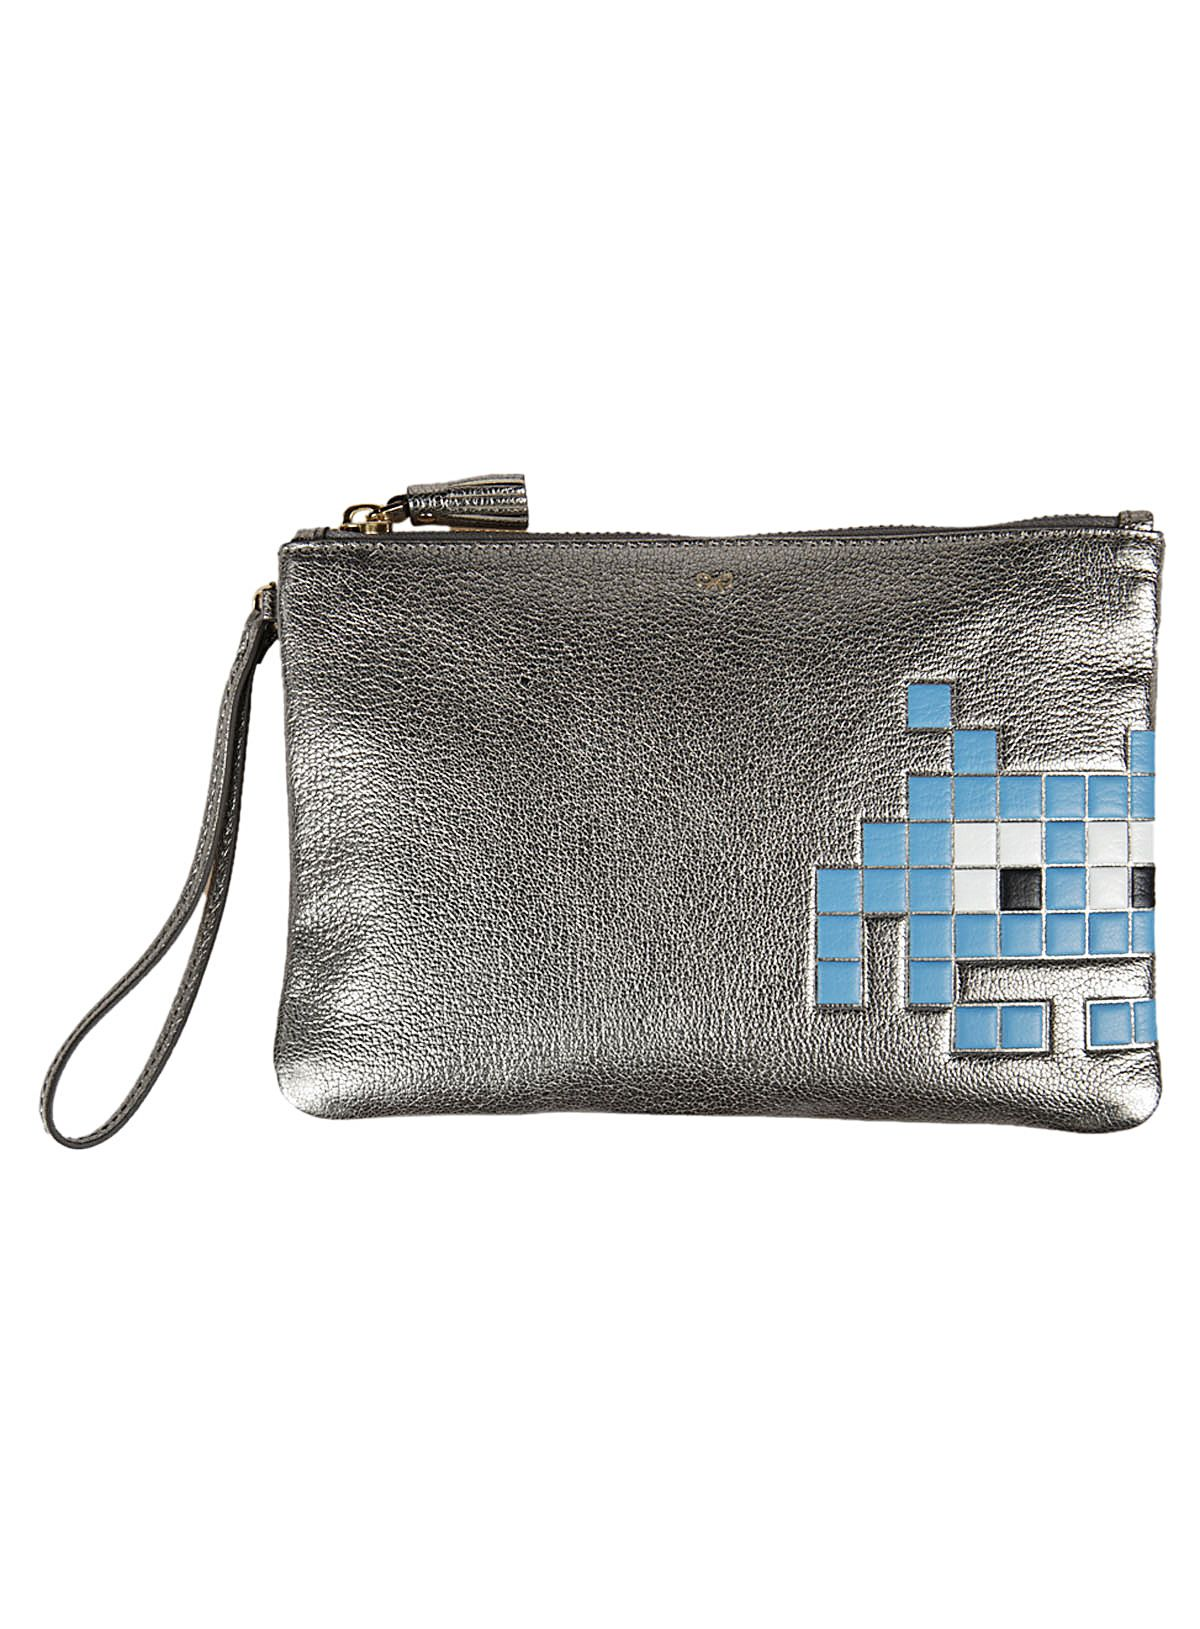 Anya Hindmarch Metallic Silver Space Invaders Pouch